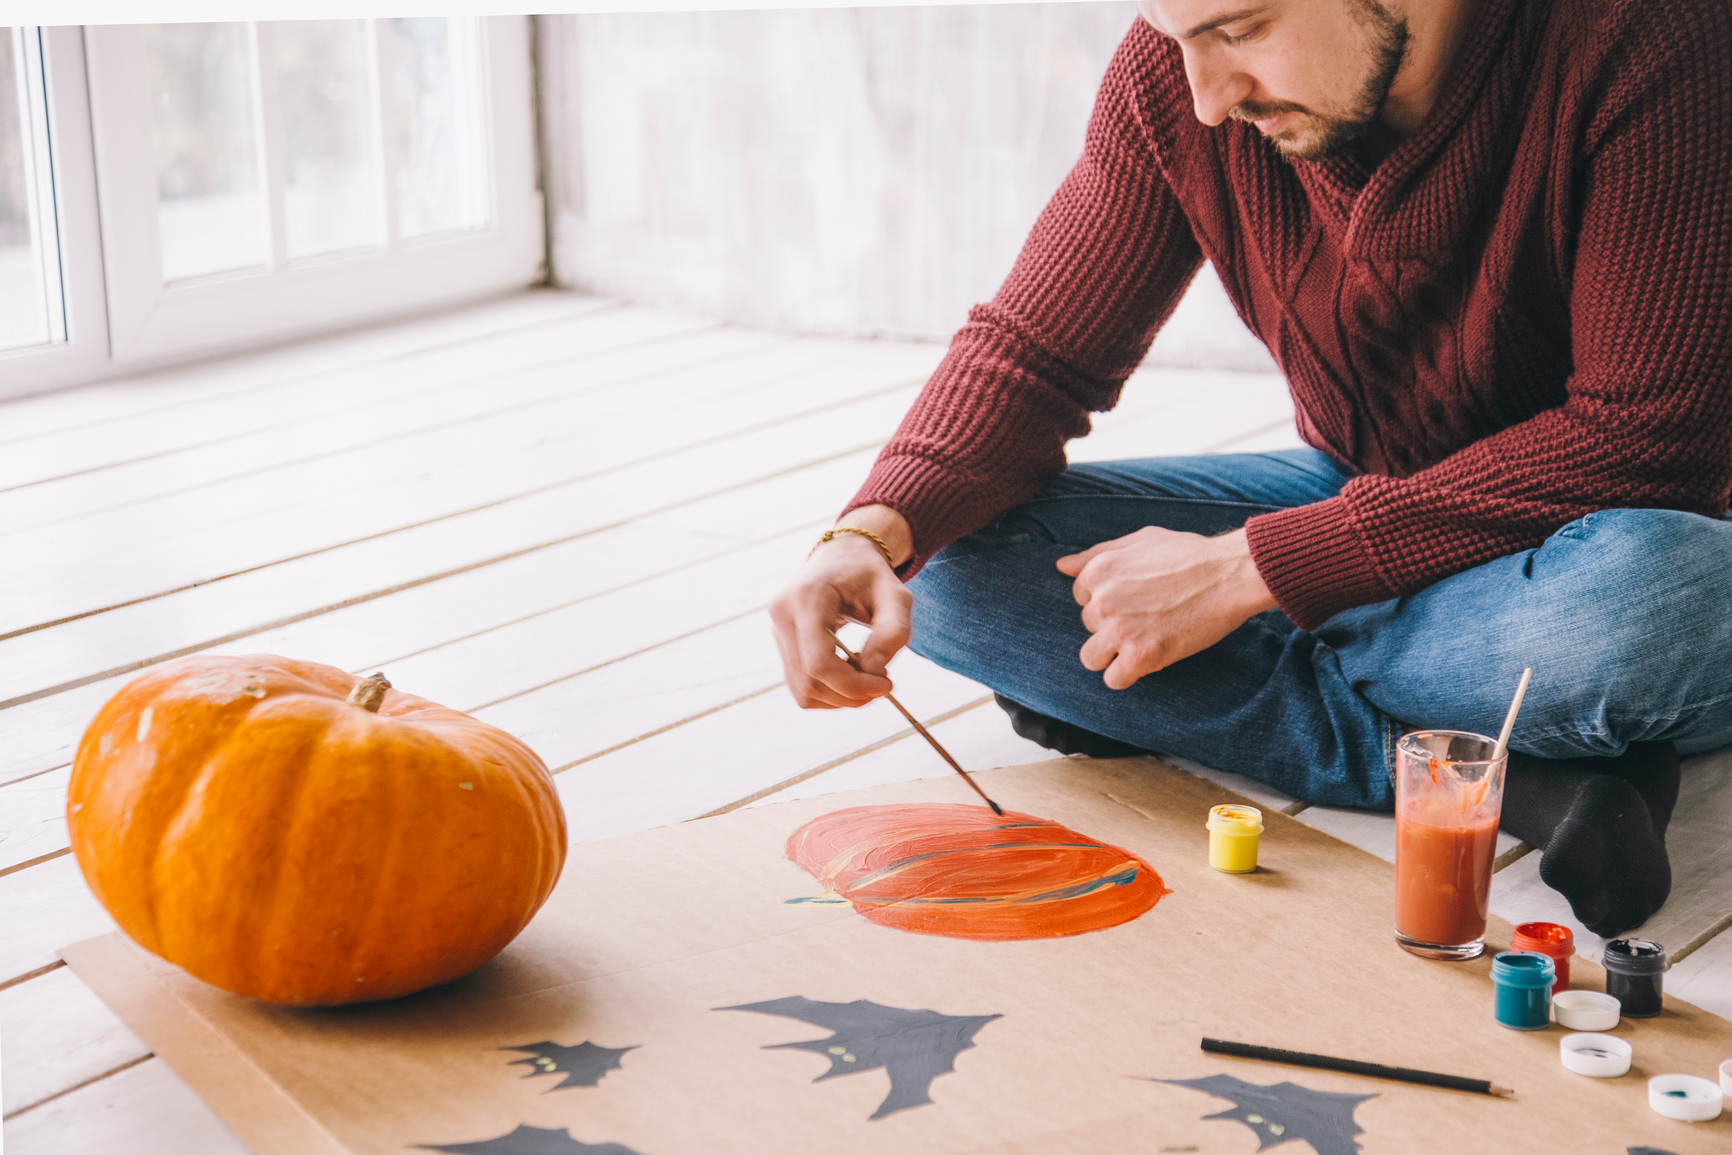 Man painting pumpkin with gouache